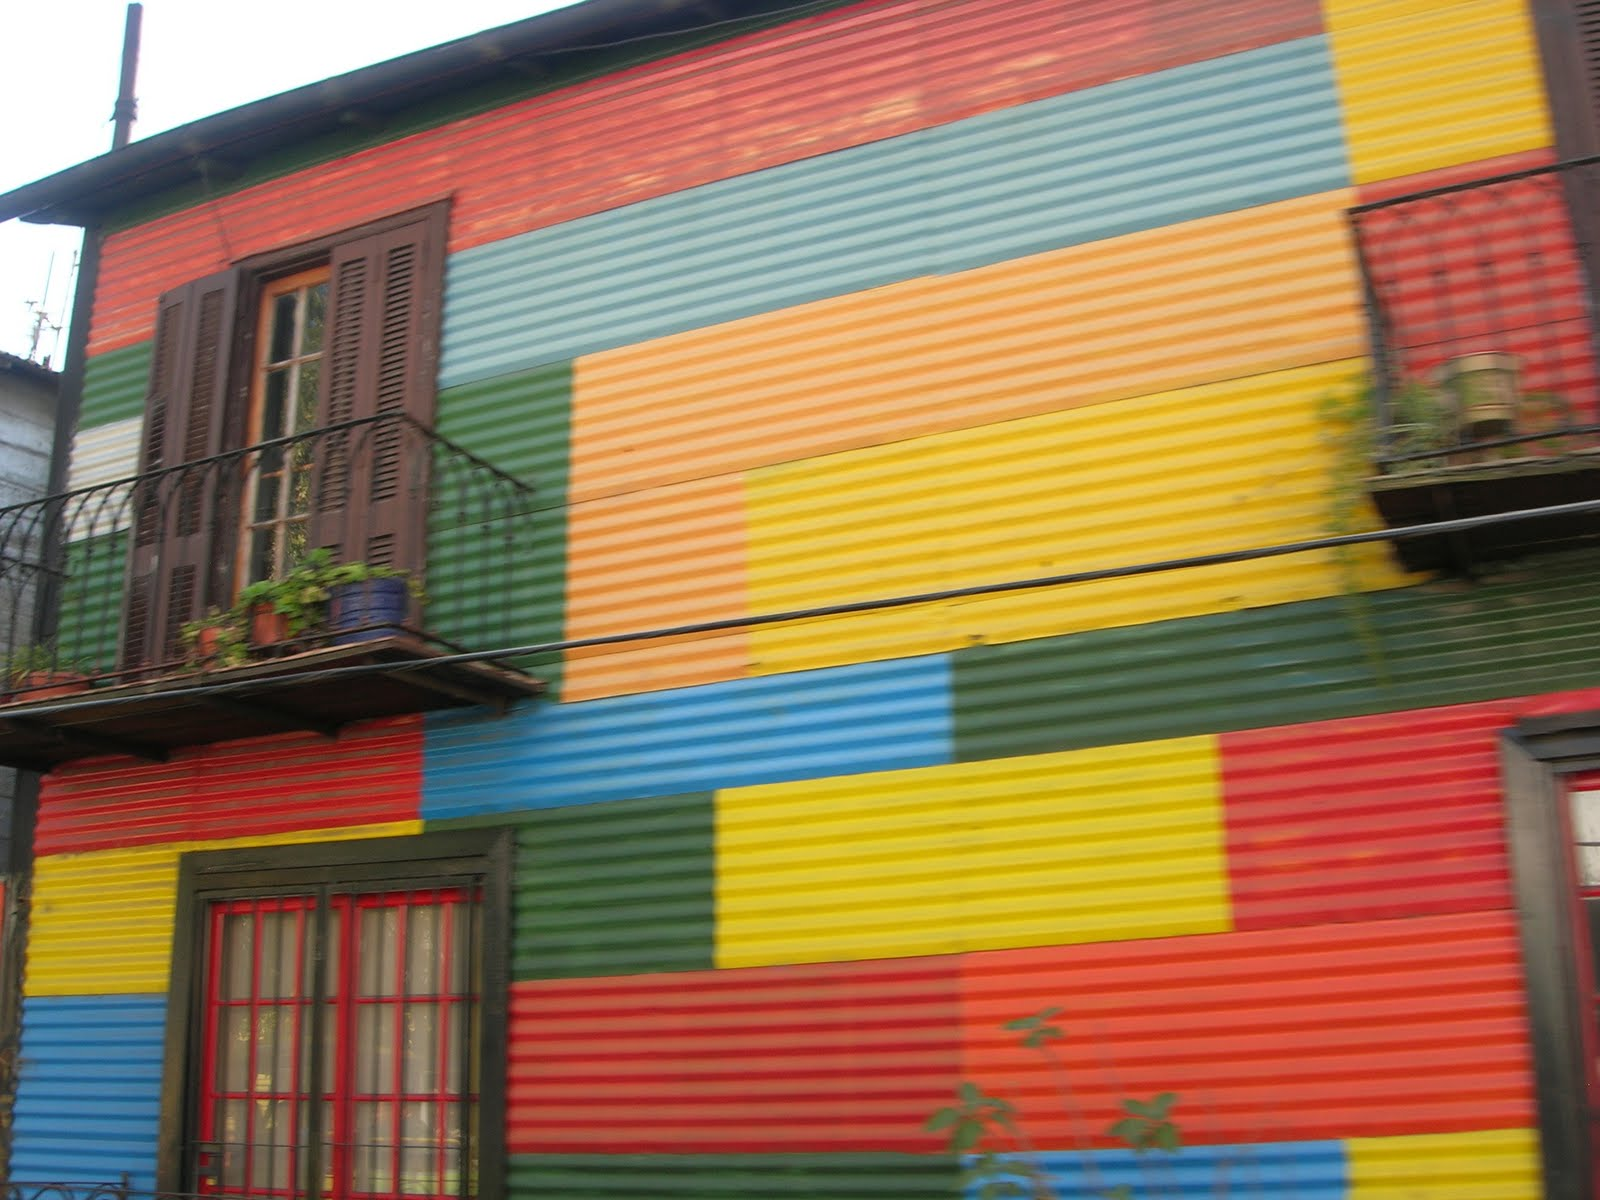 Painted houses yellow painted house pictures of house - The painted houses of ciocanesti ...